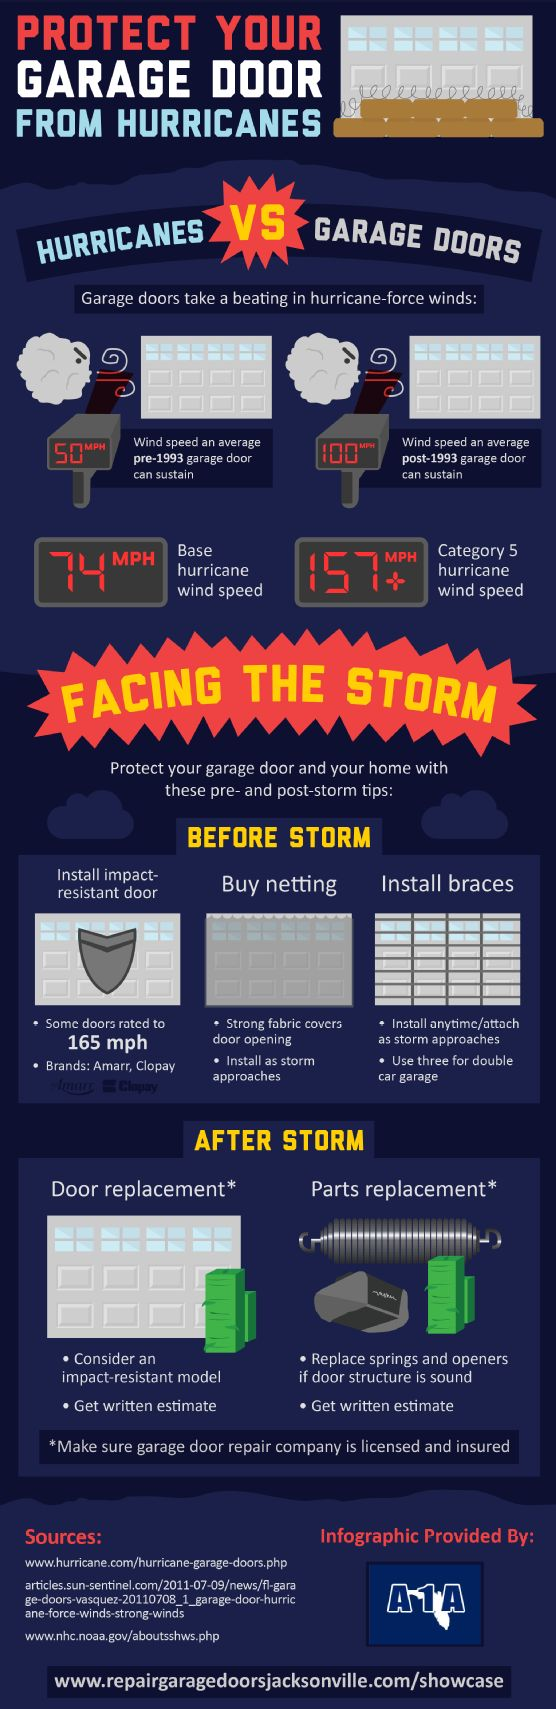 Hurricane winds often damage garage doors made before 1993. Replacing these outdated doors with impact-resistant doors is the best way to avoid damage